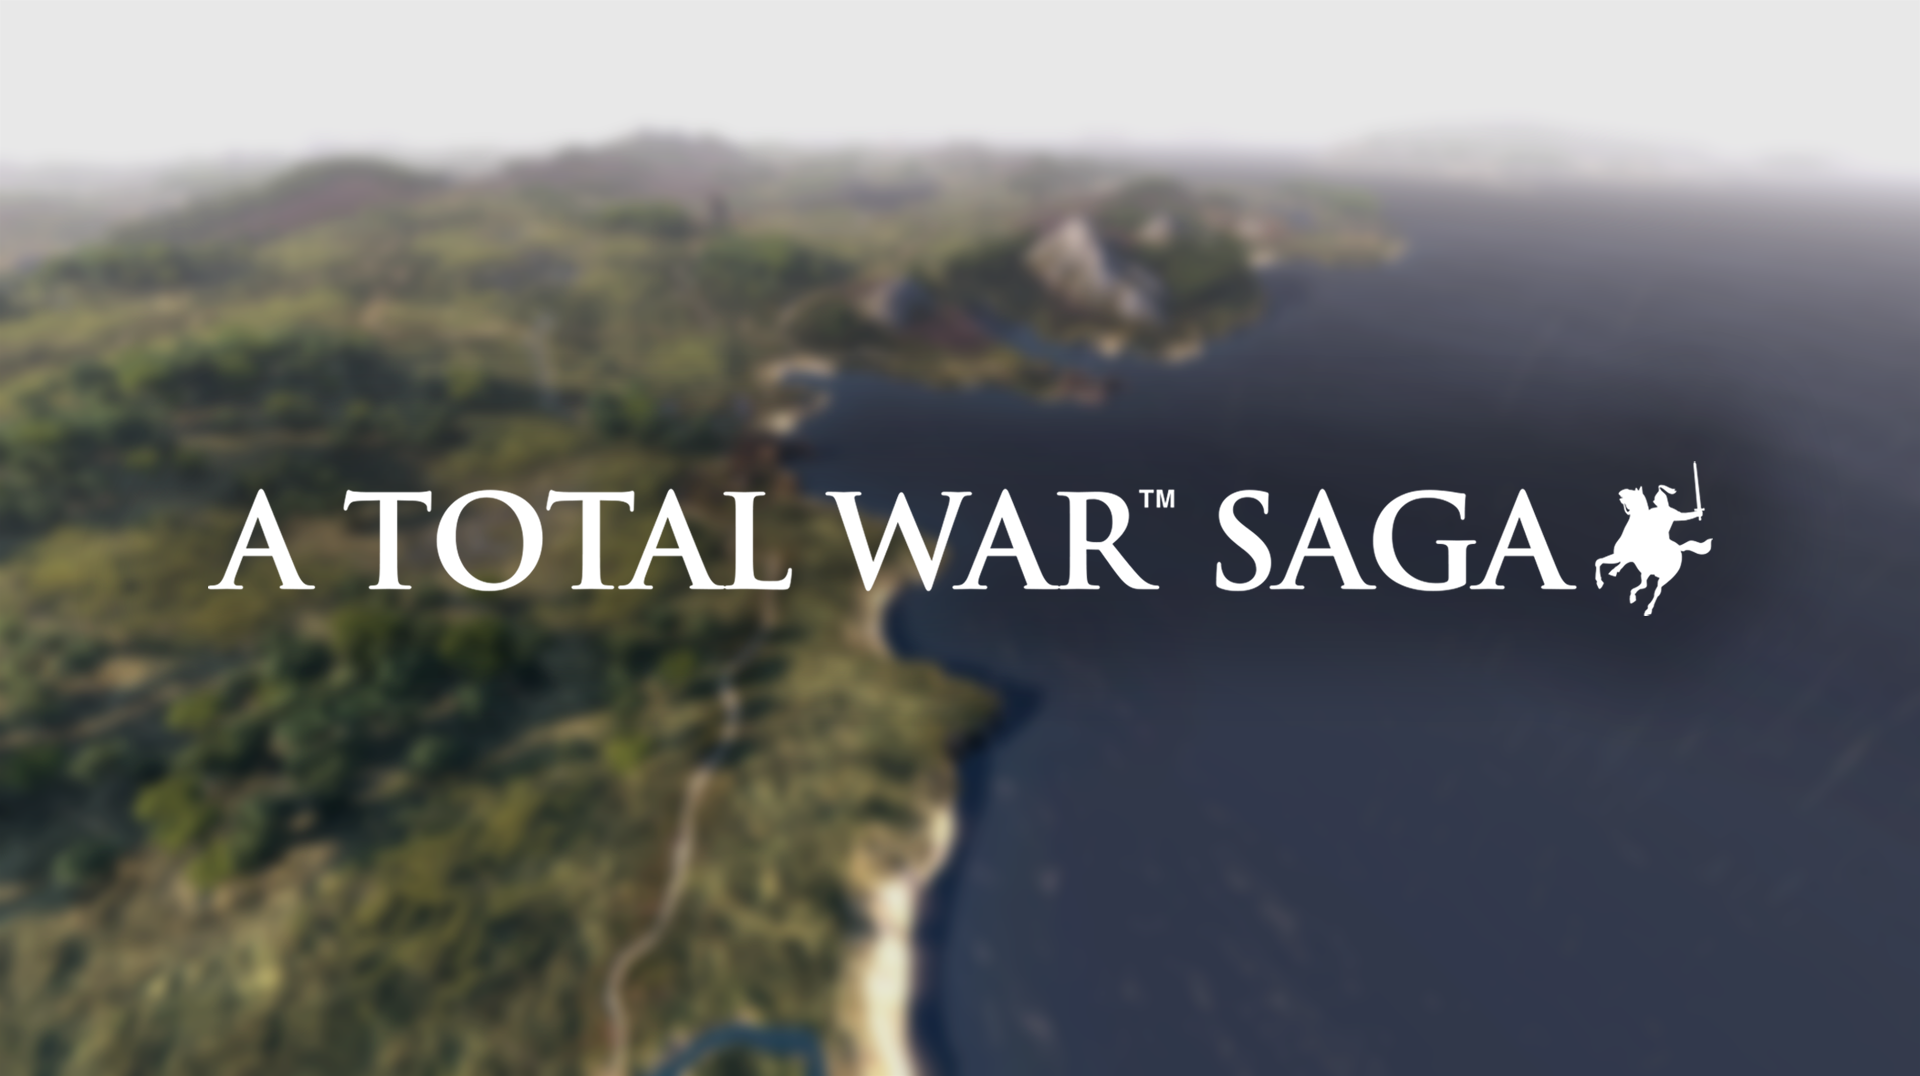 https://cdn.creative-assembly.com/total-war/com.totalwar.www/wp-content/uploads/2017/07/04105802/total-war-saga-logo1.png